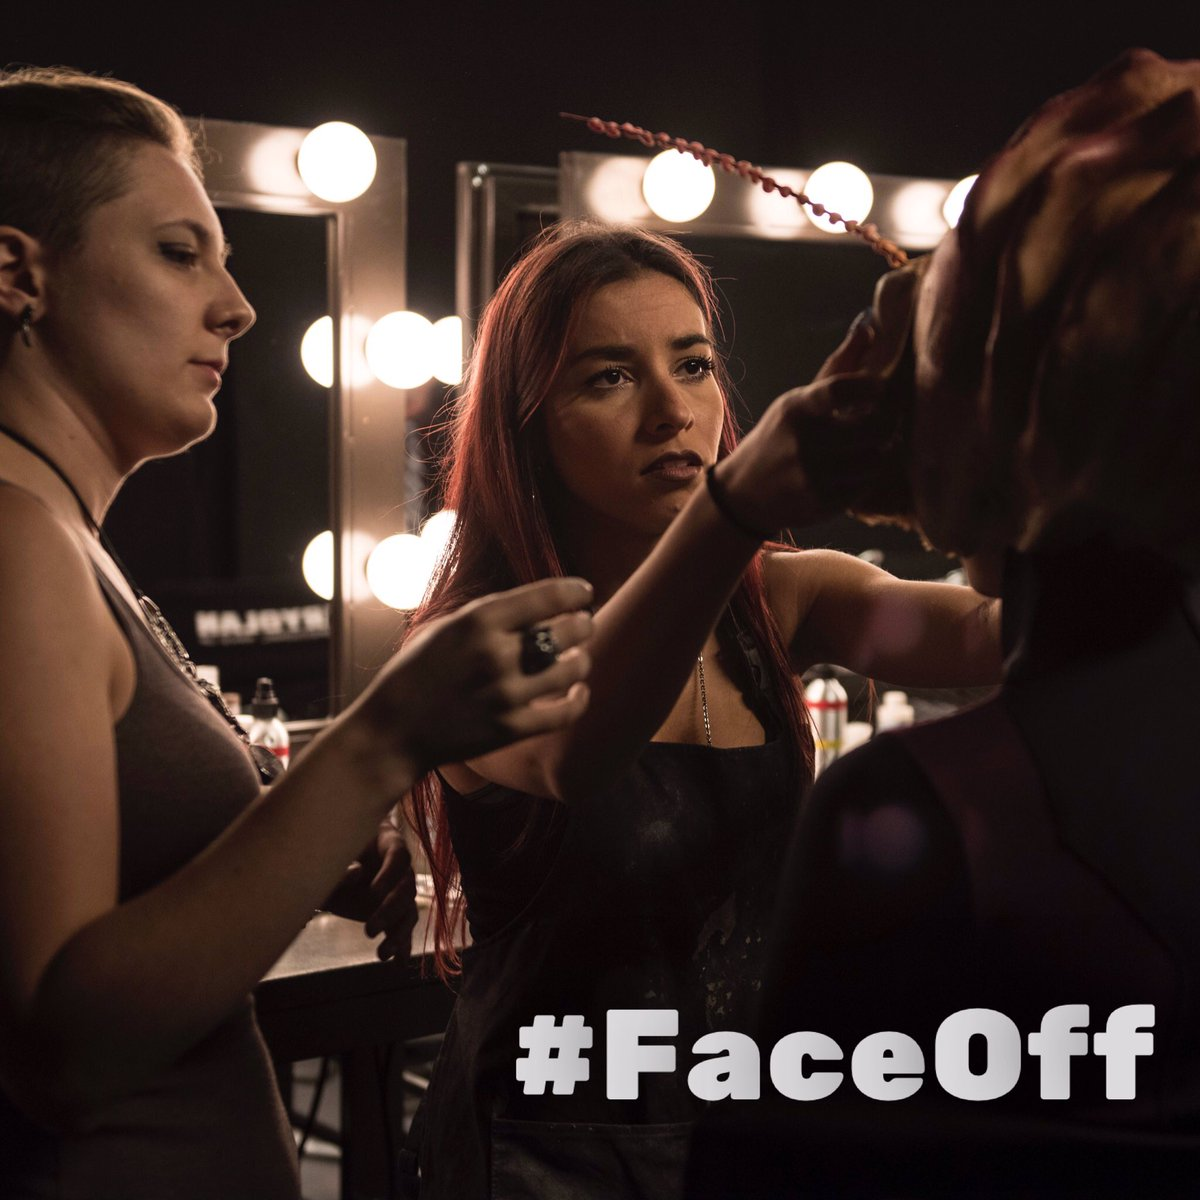 The artists are hatching something otherworldly TONIGHT on #FaceOff #DivideAndConquer at 9/8c on @Syfy! #sfx #sfxmua #sfxmakeup<br>http://pic.twitter.com/QWbBru9Jam